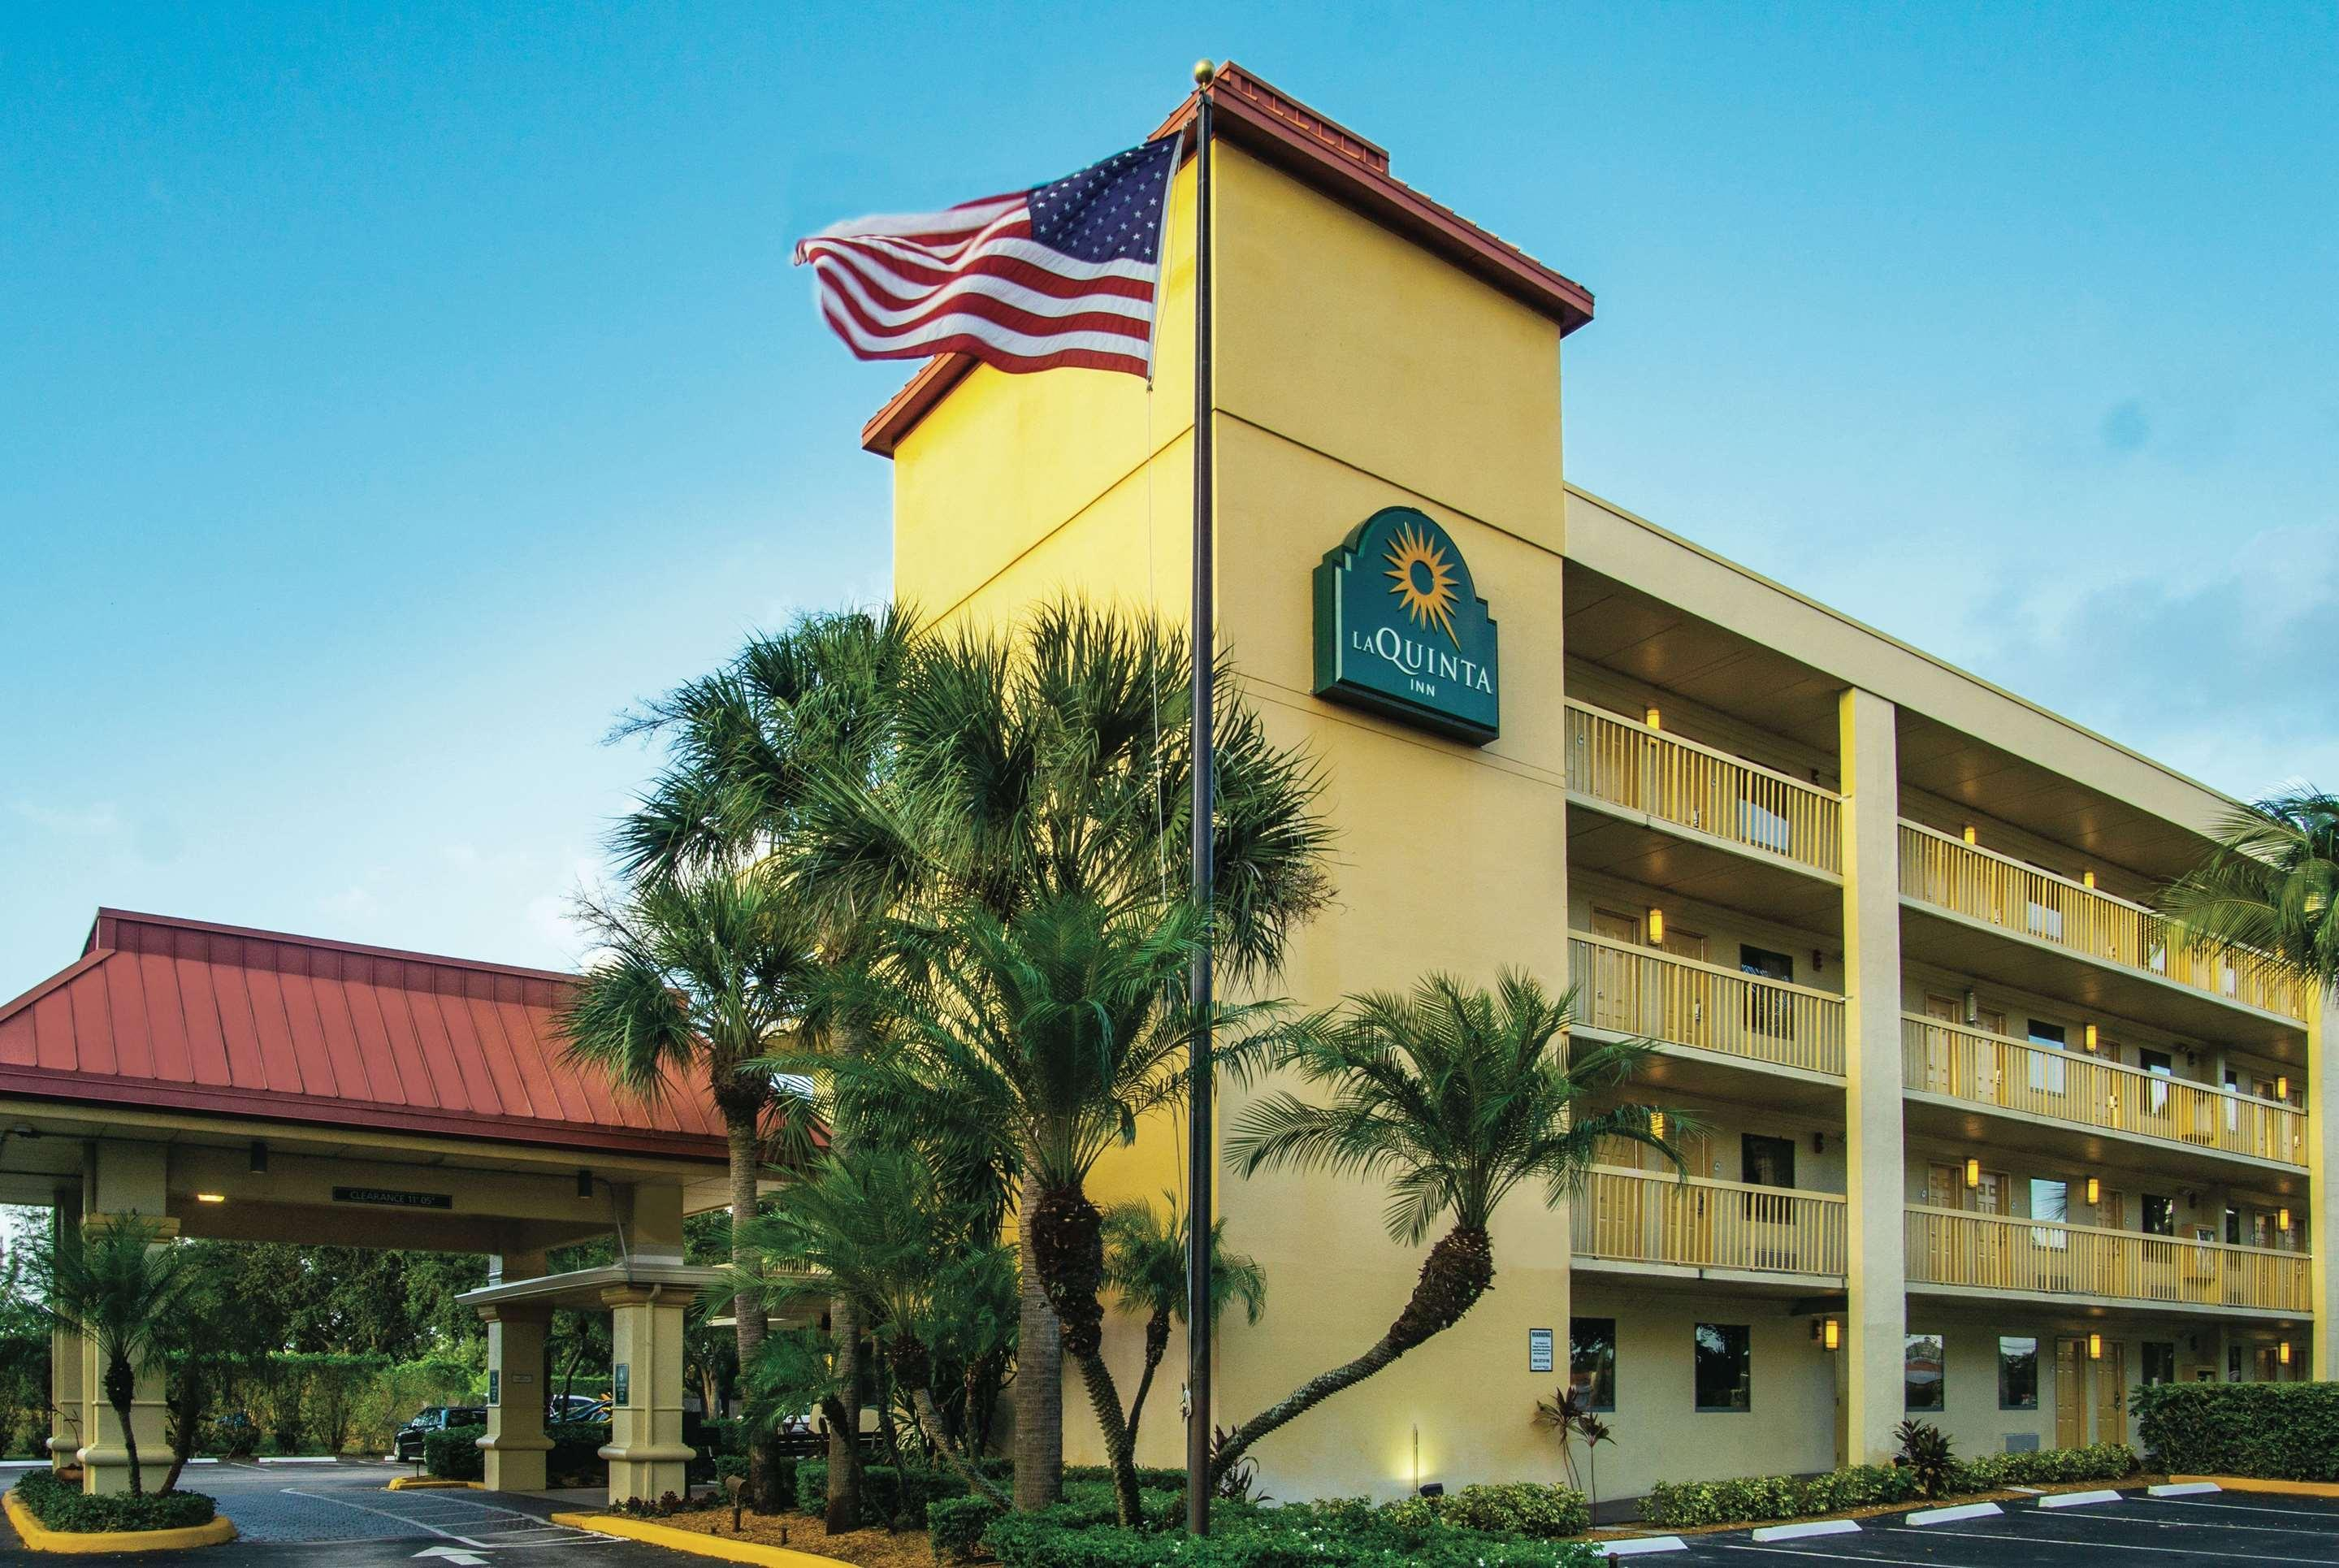 La Quinta Inn by Wyndham West Palm Beach - Florida Turnpike